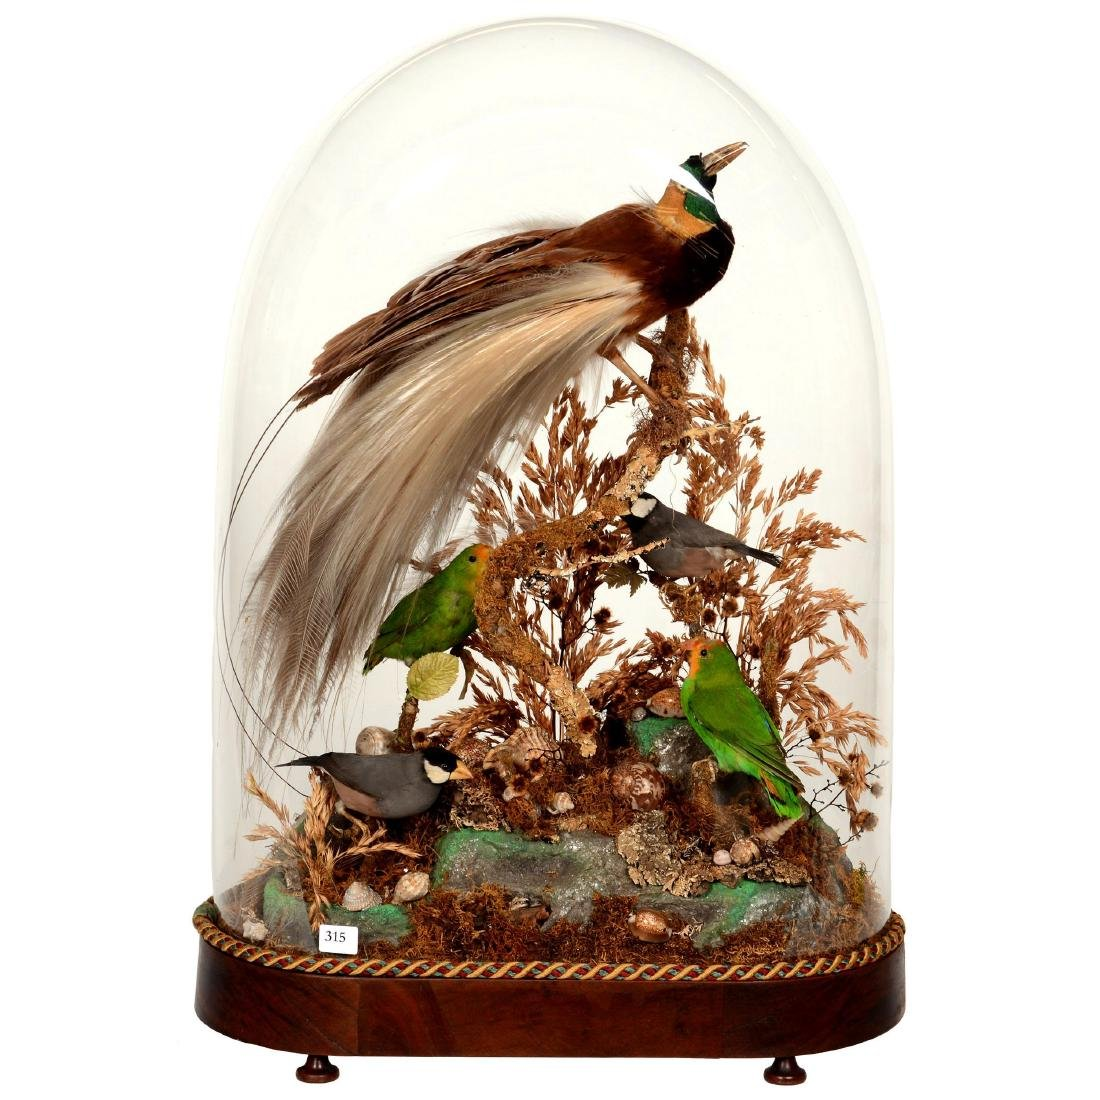 Early Victorian Glass Dome